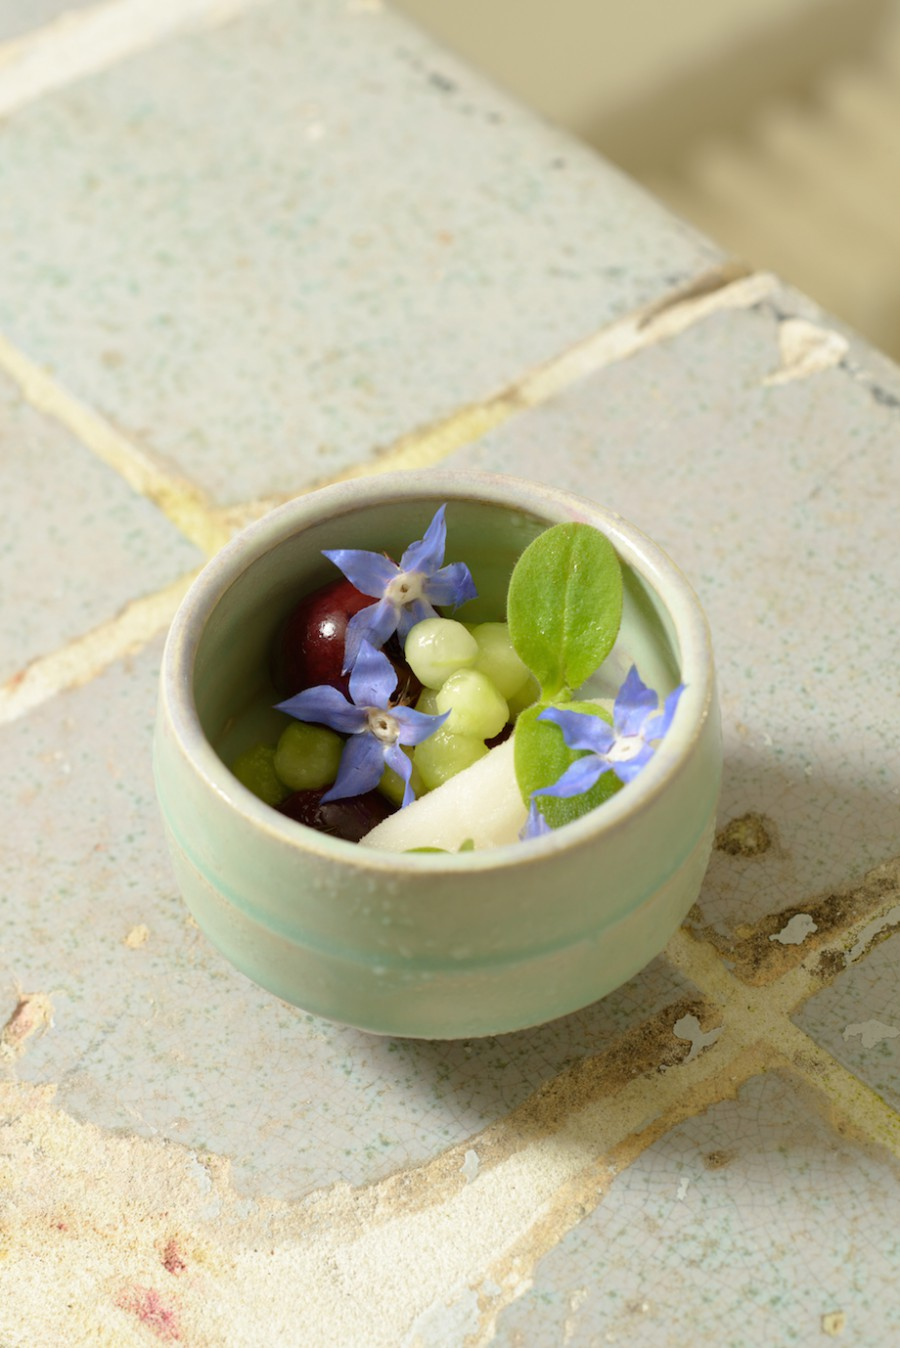 Cucumber, cherries and borage flowers served in a clay cup by Michael J. Strand.